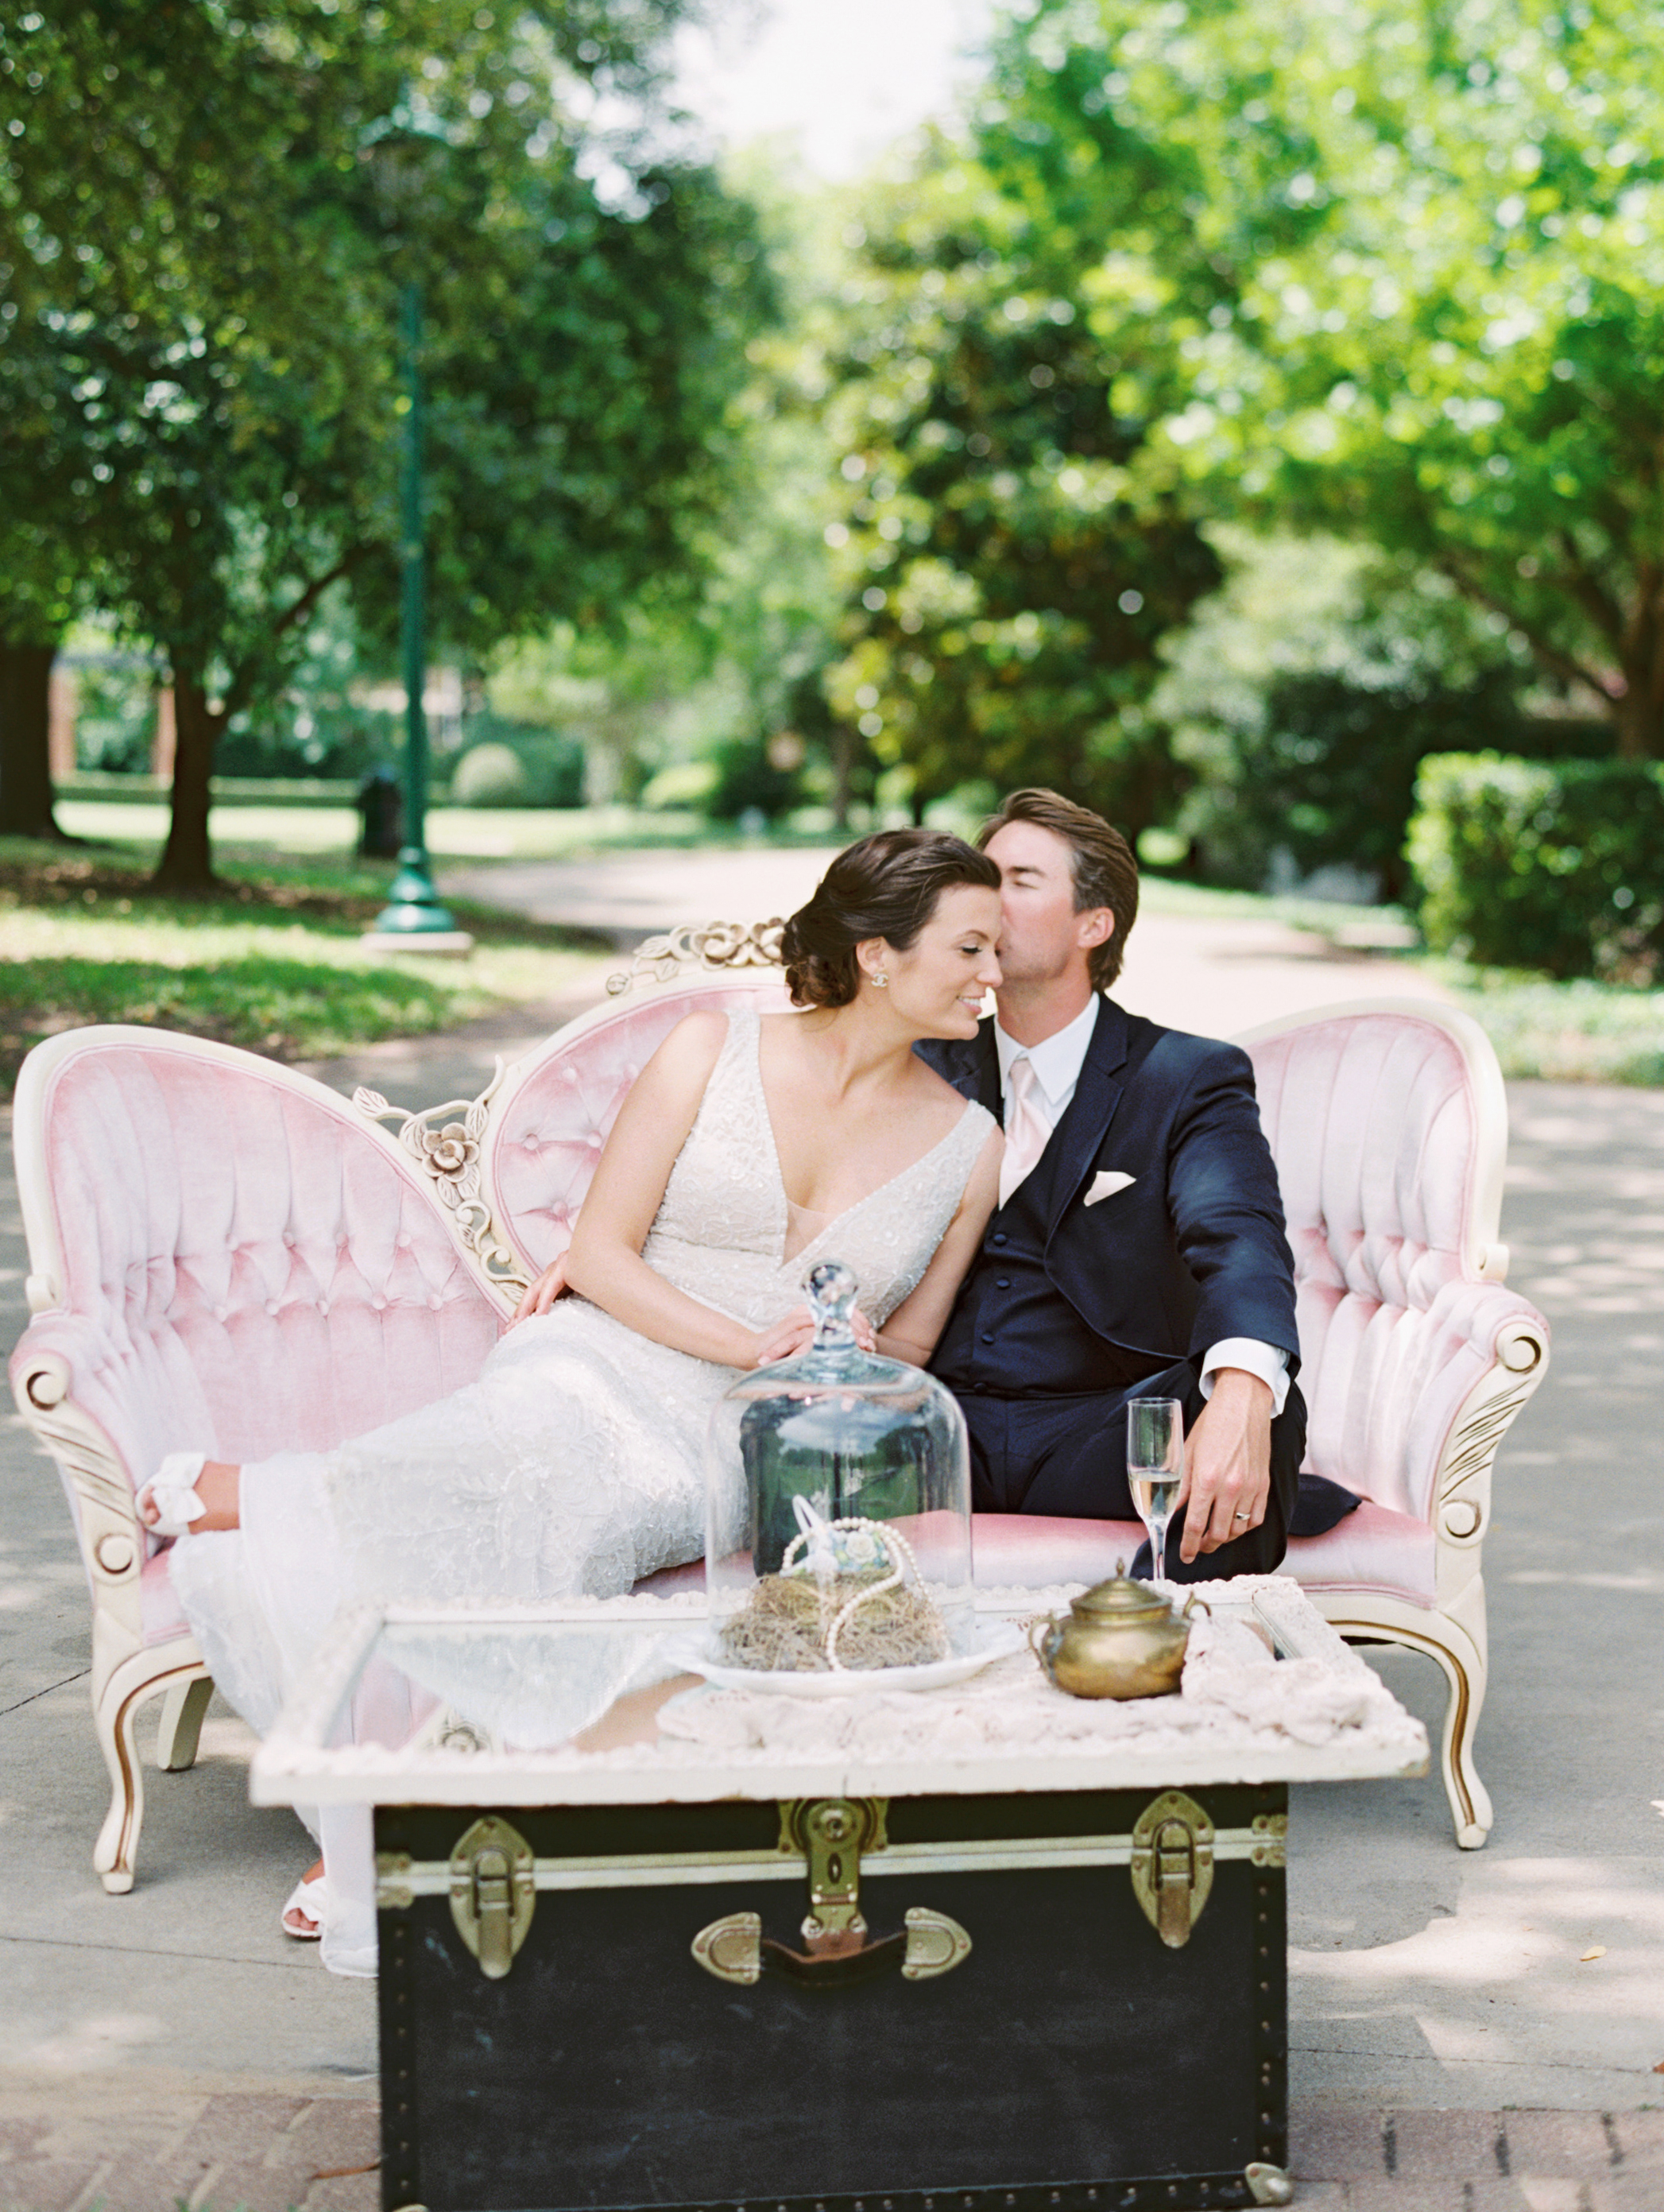 Meagan + Jacob = Brunch Garden Wedding at Arlington Hall .   Stephanie brazzle photography